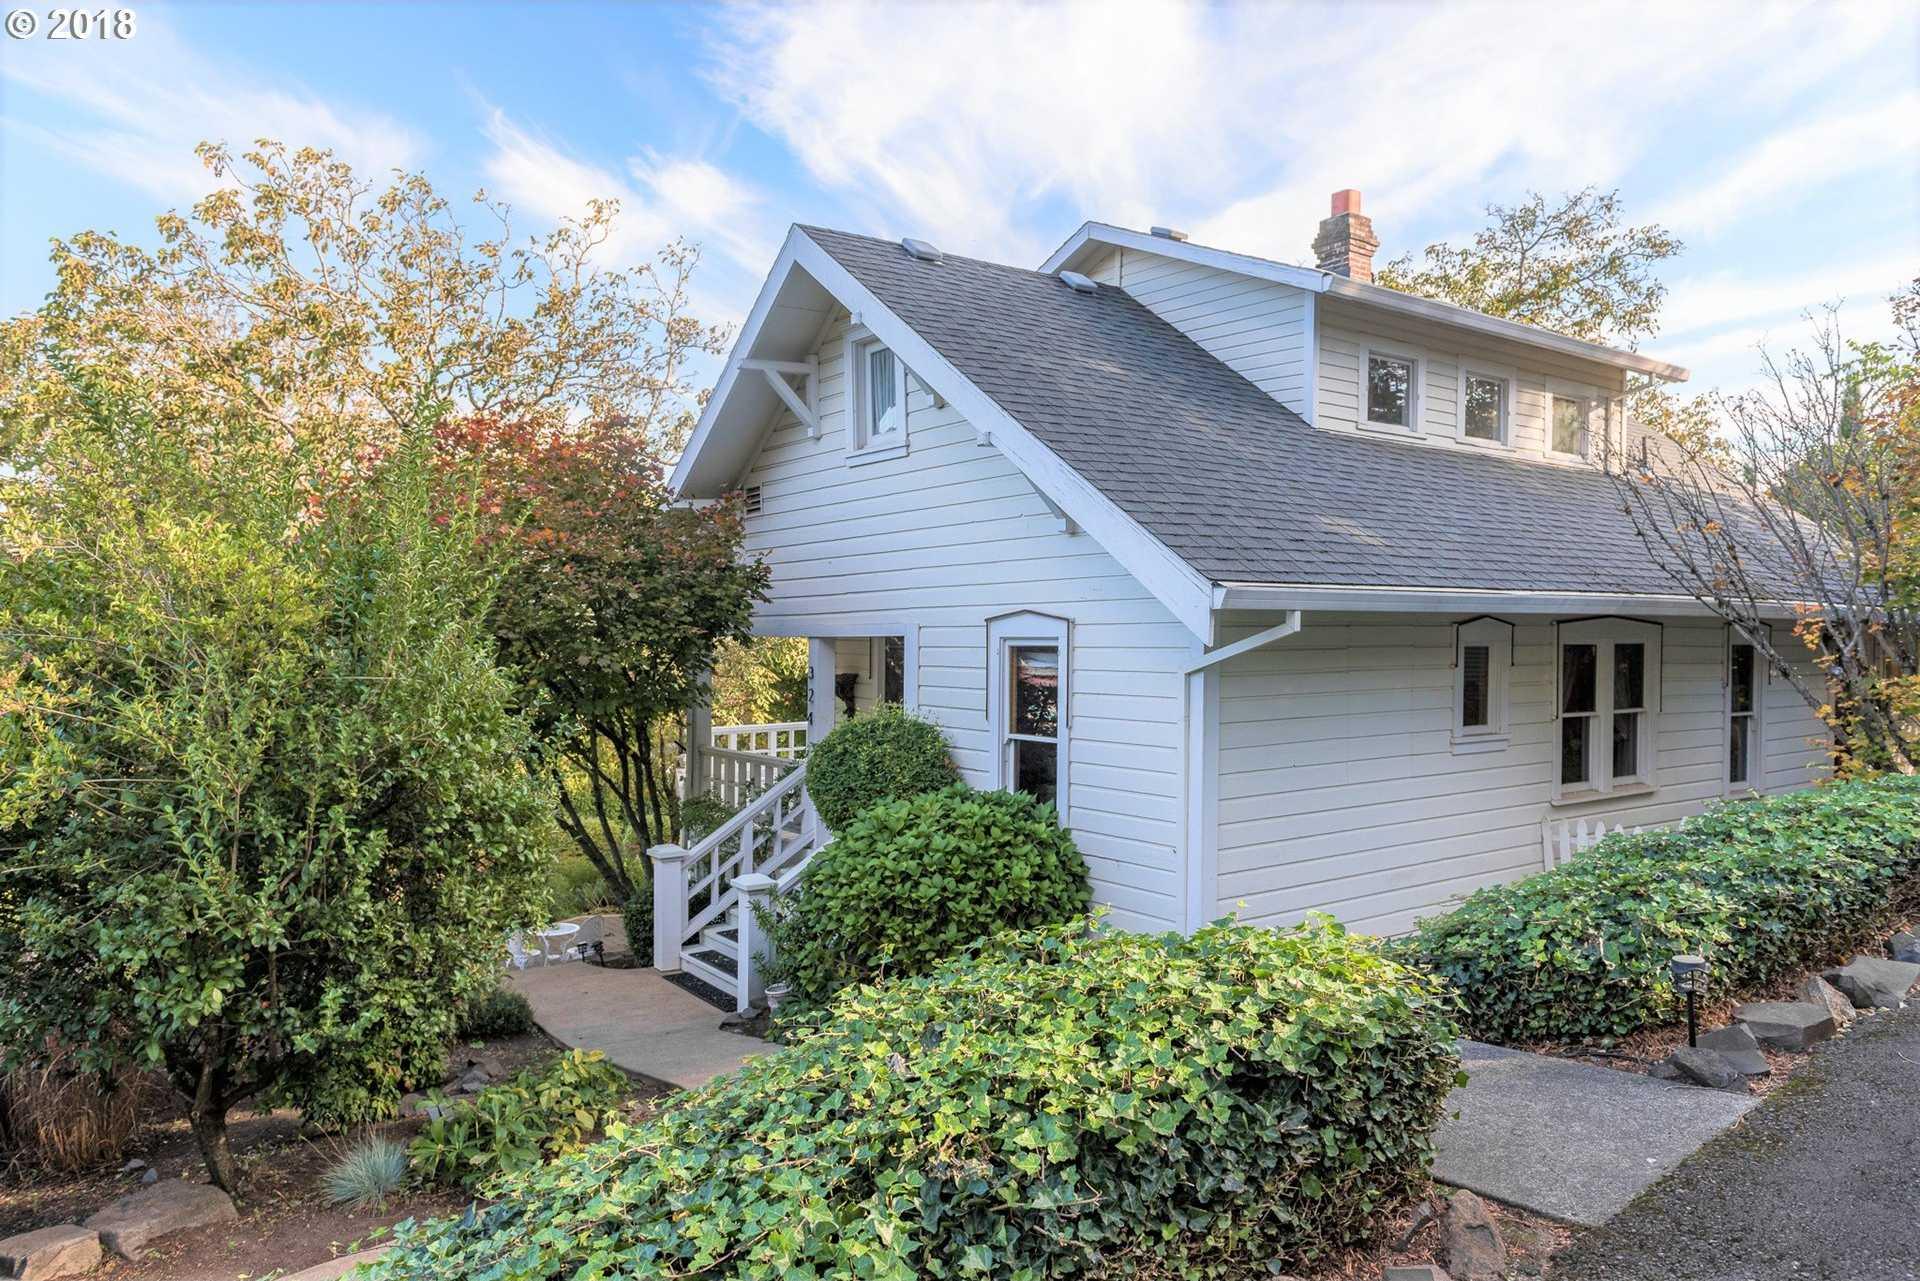 $549,900 - 3Br/2Ba -  for Sale in Old Town Troutdale, Troutdale